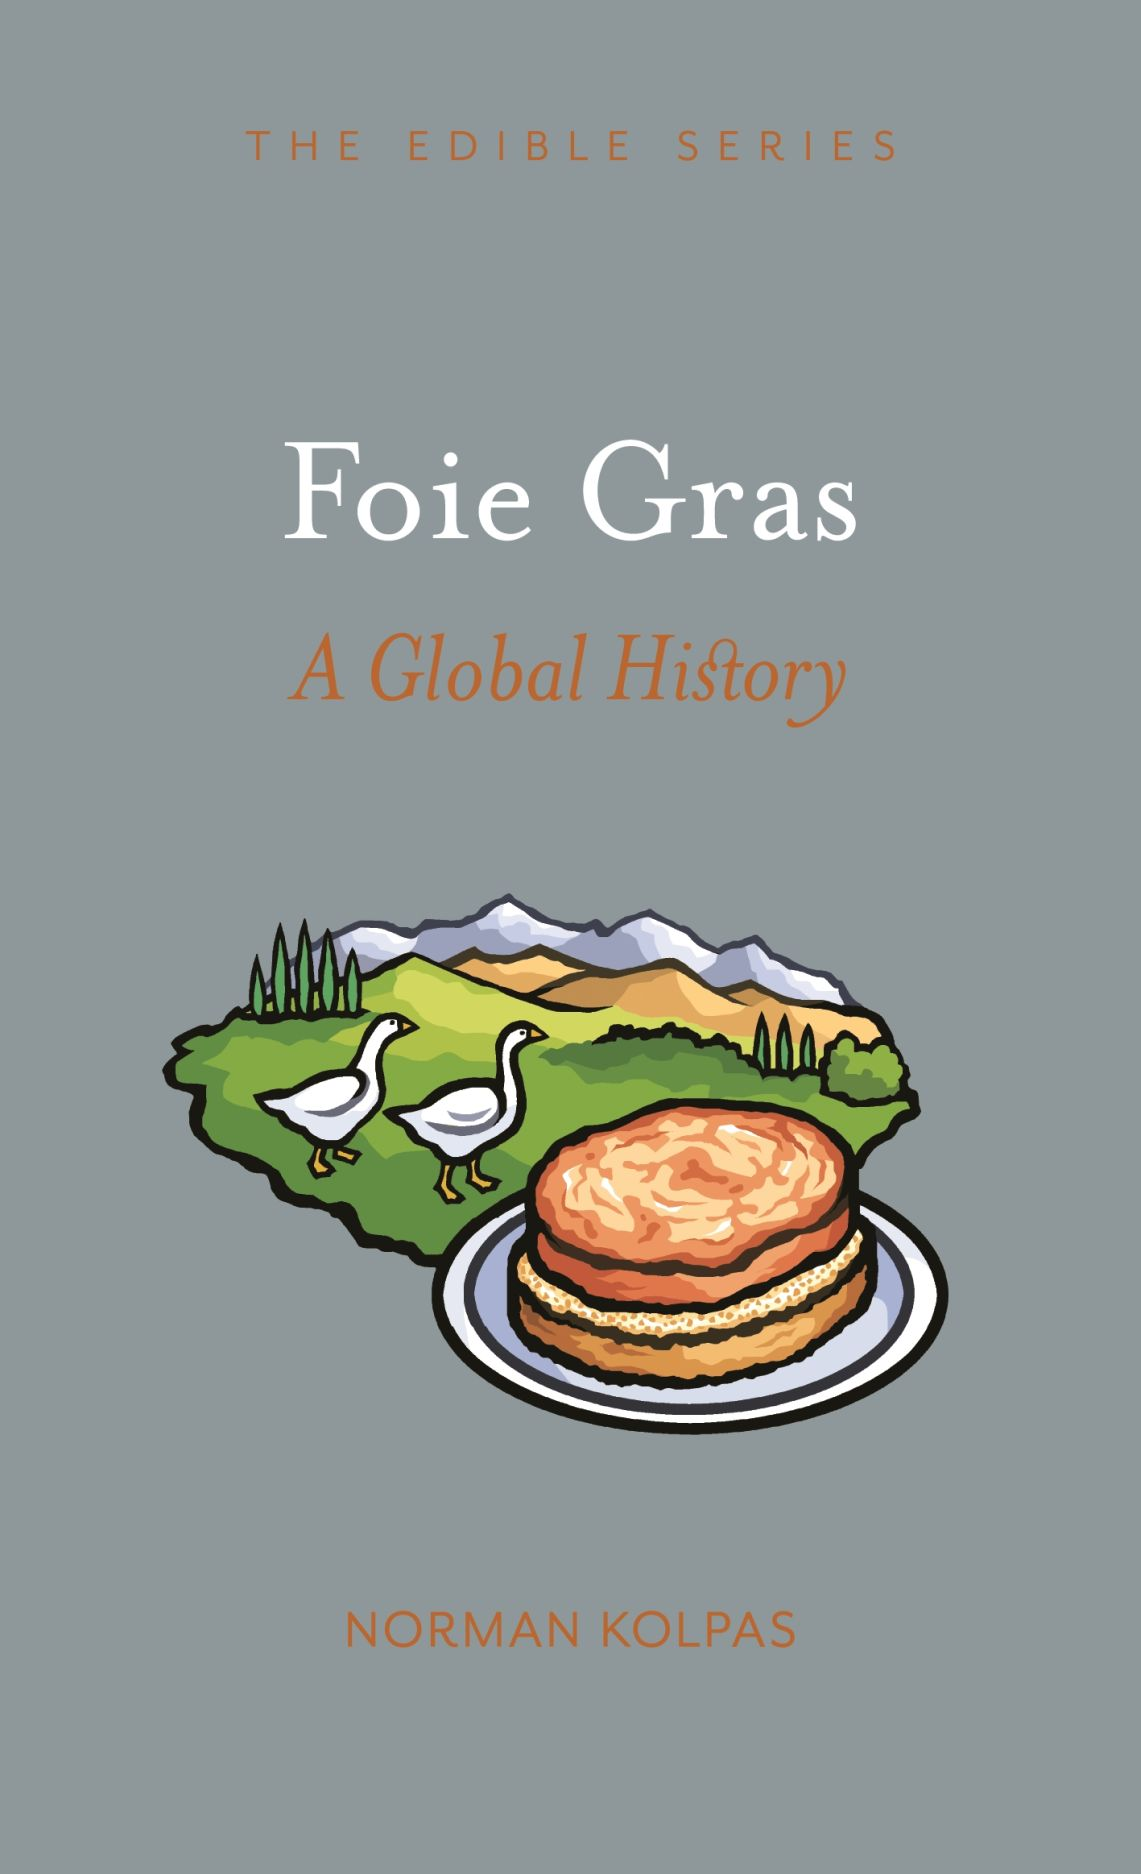 Foie Gras: A Global History